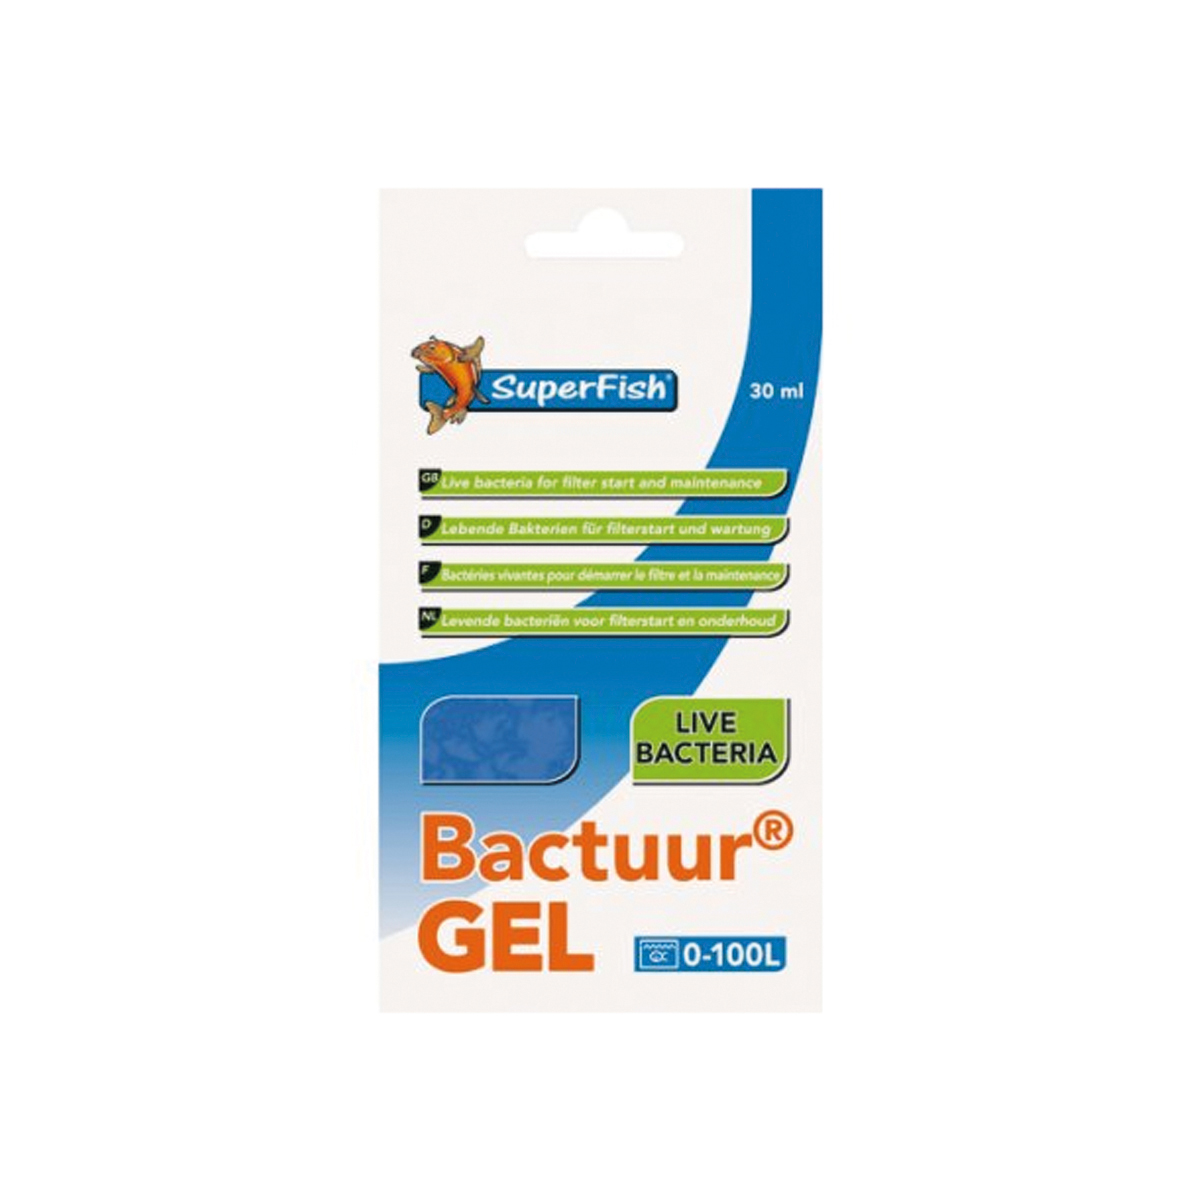 SF BACTUUR GEL FILTER BACTERIA J 00001